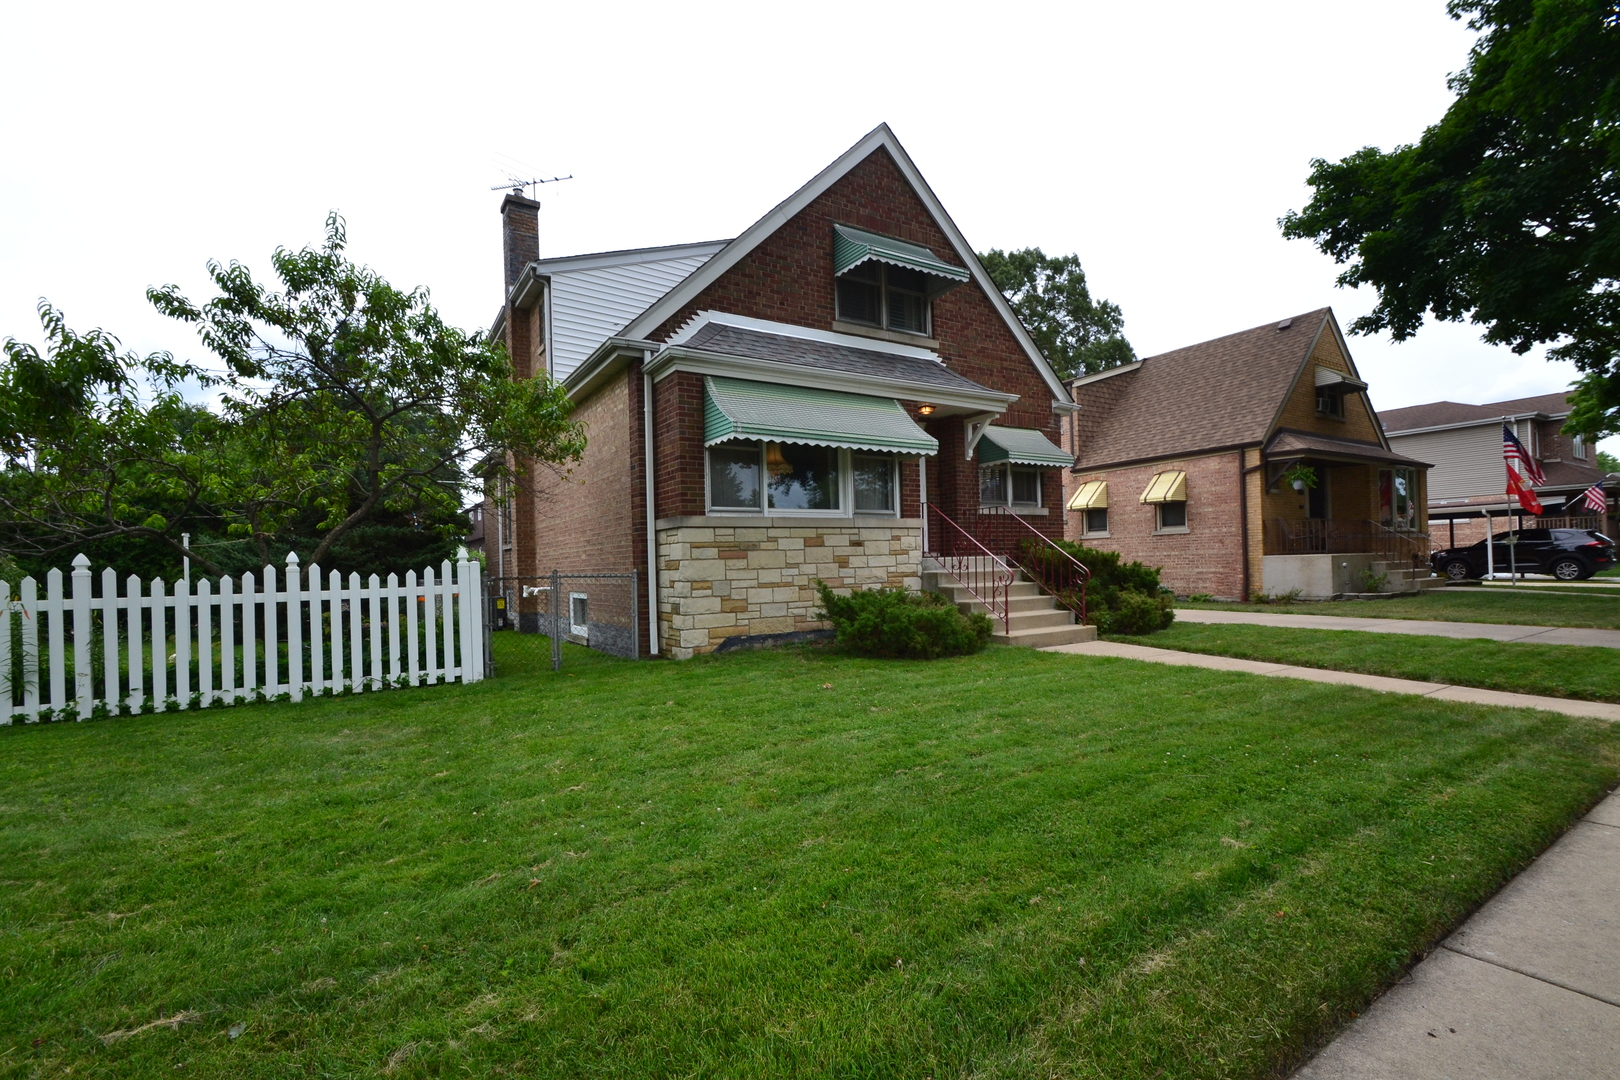 Photo of 10529 Ridgeway Chicago IL 60655